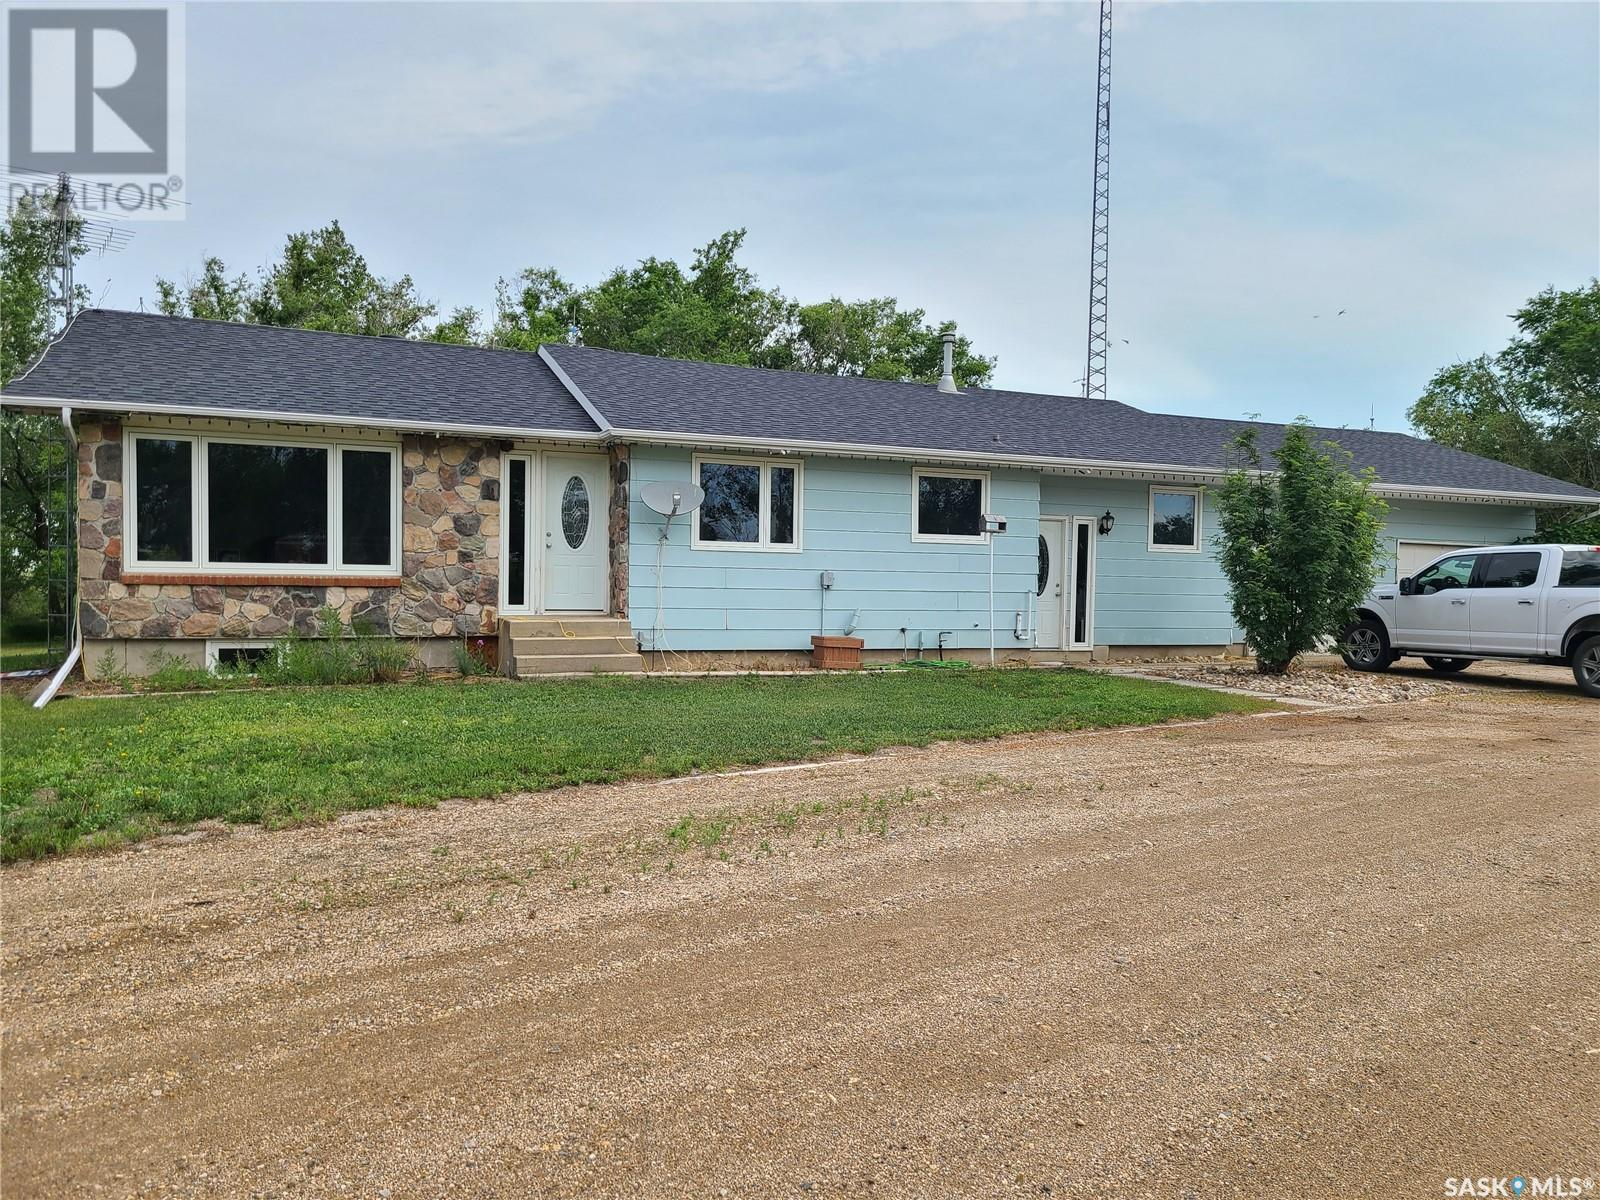 residential property for For sale at Brokenshell Rm No. 68, Saskatchewan